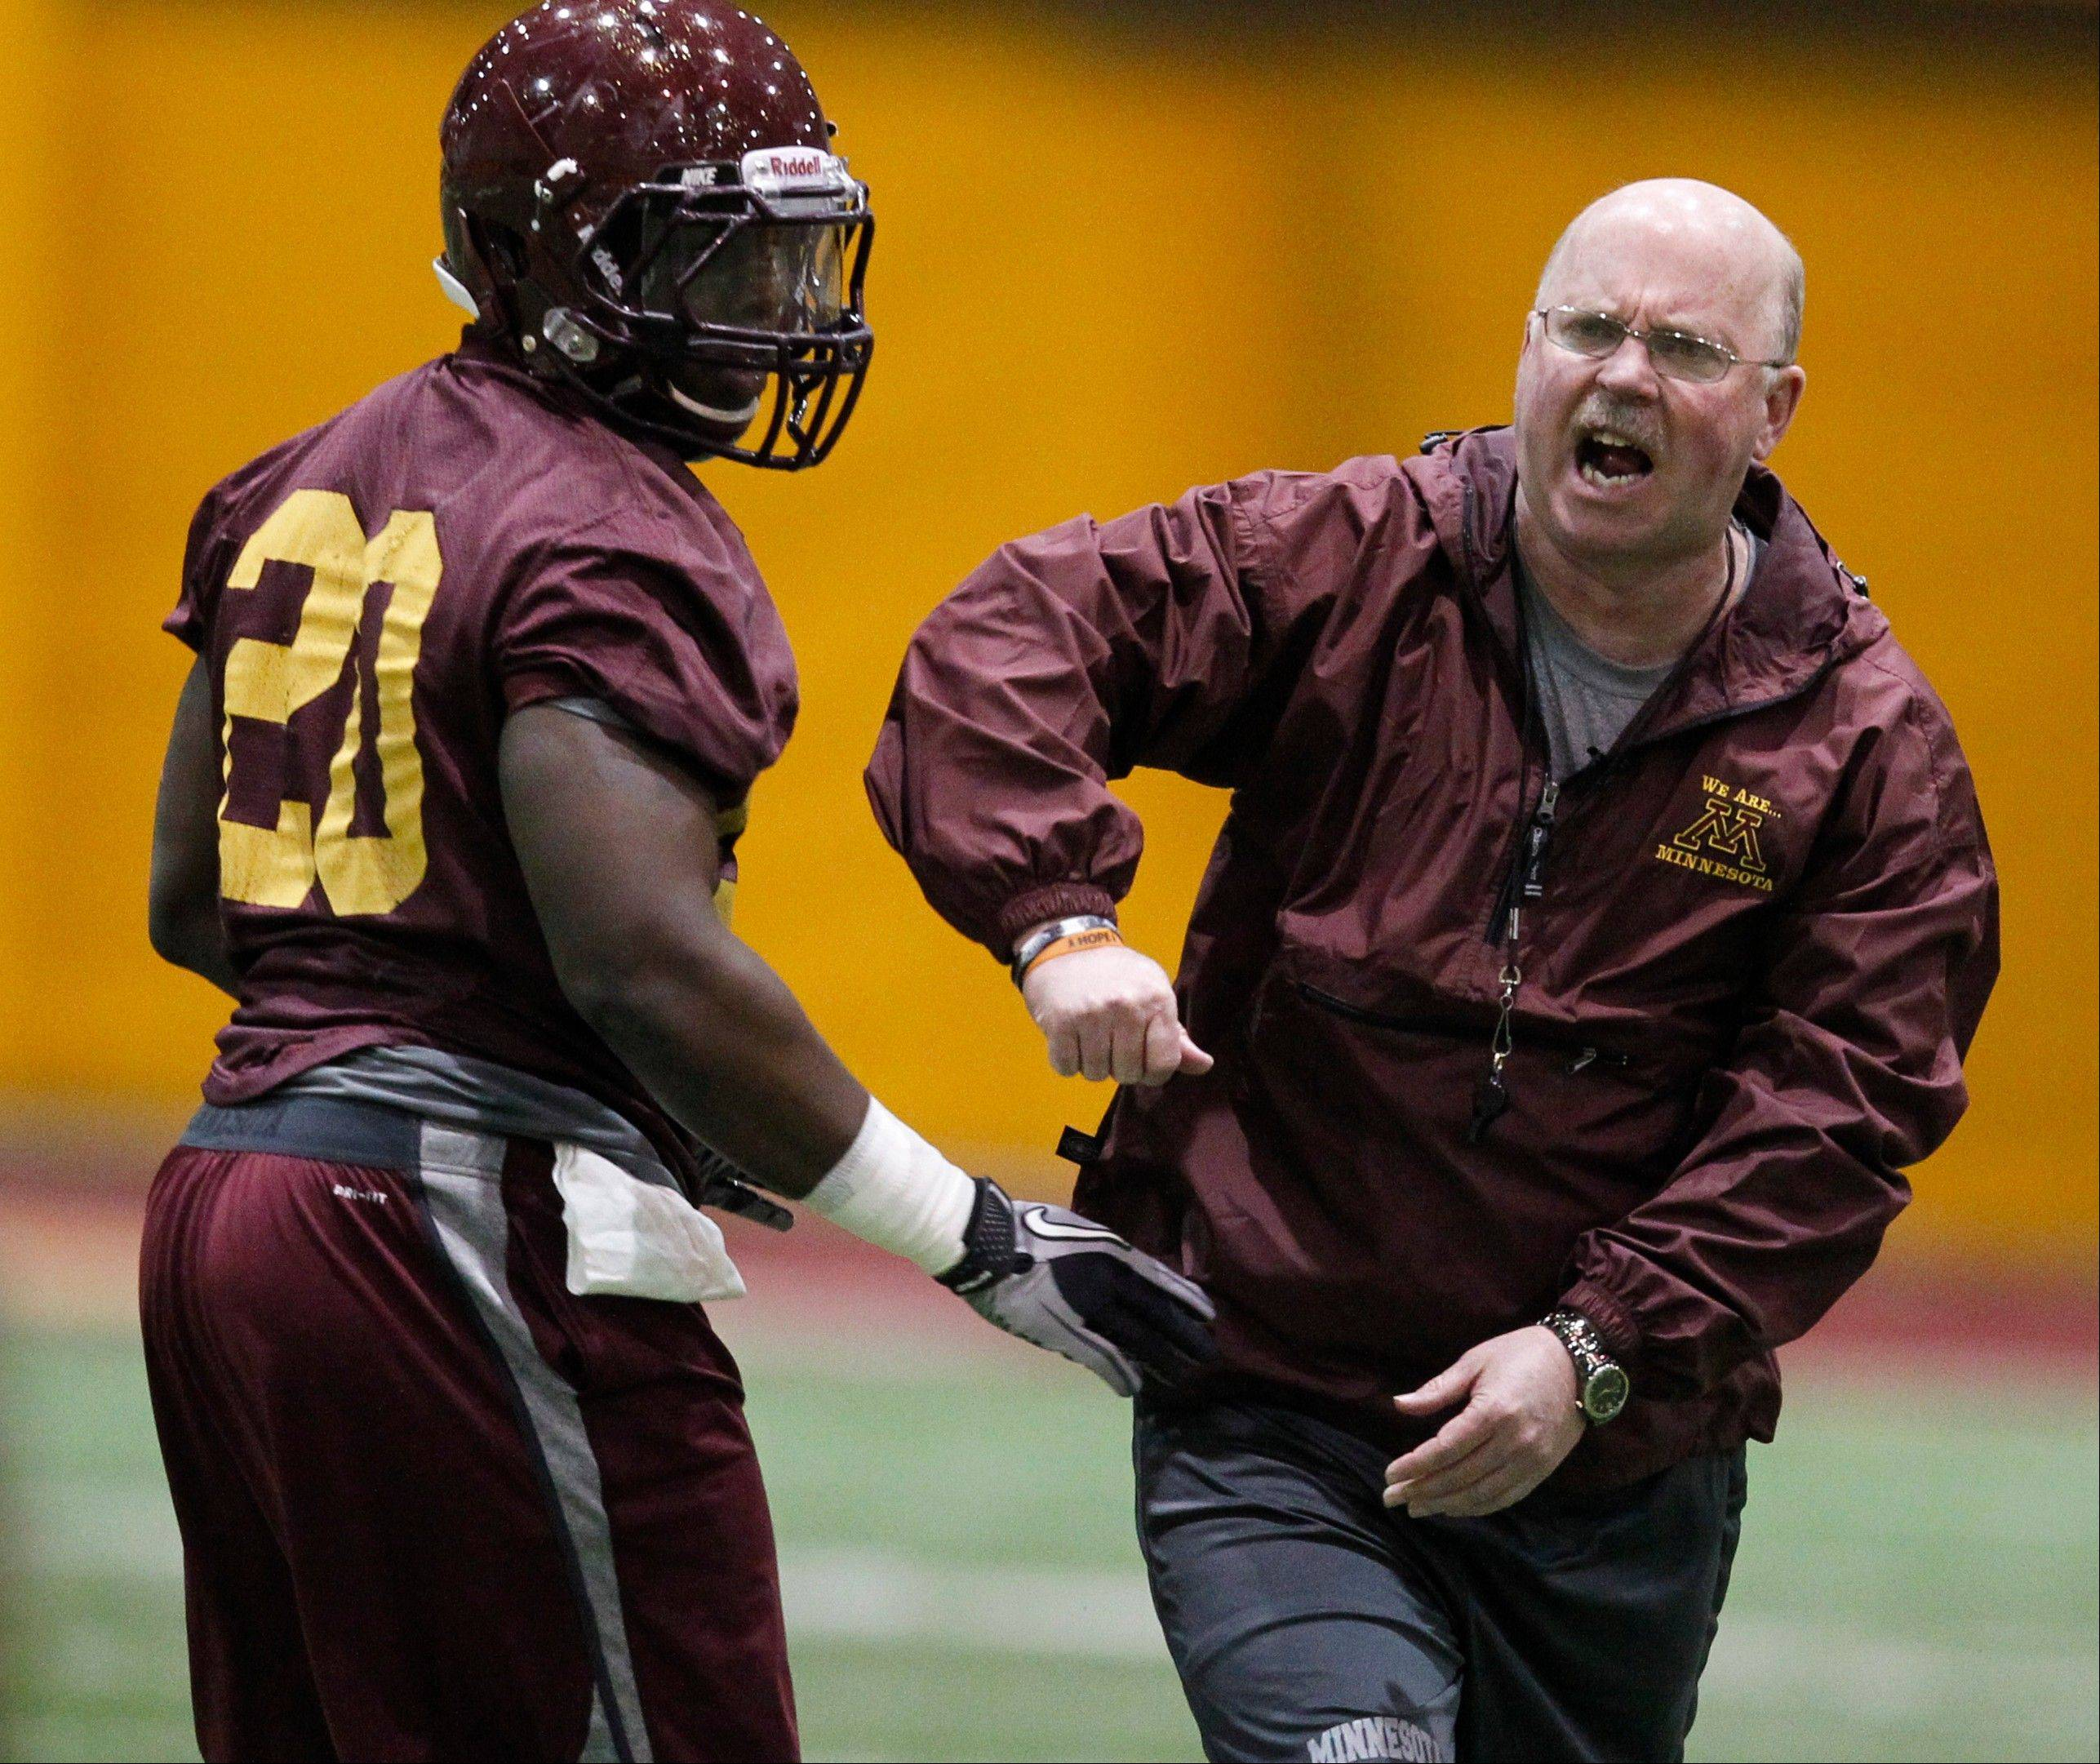 Jerry Kill, Minnesota's new coach, has taken careful steps to instill a sense of discipline in his players and a sense of connection from the alumni and fans.